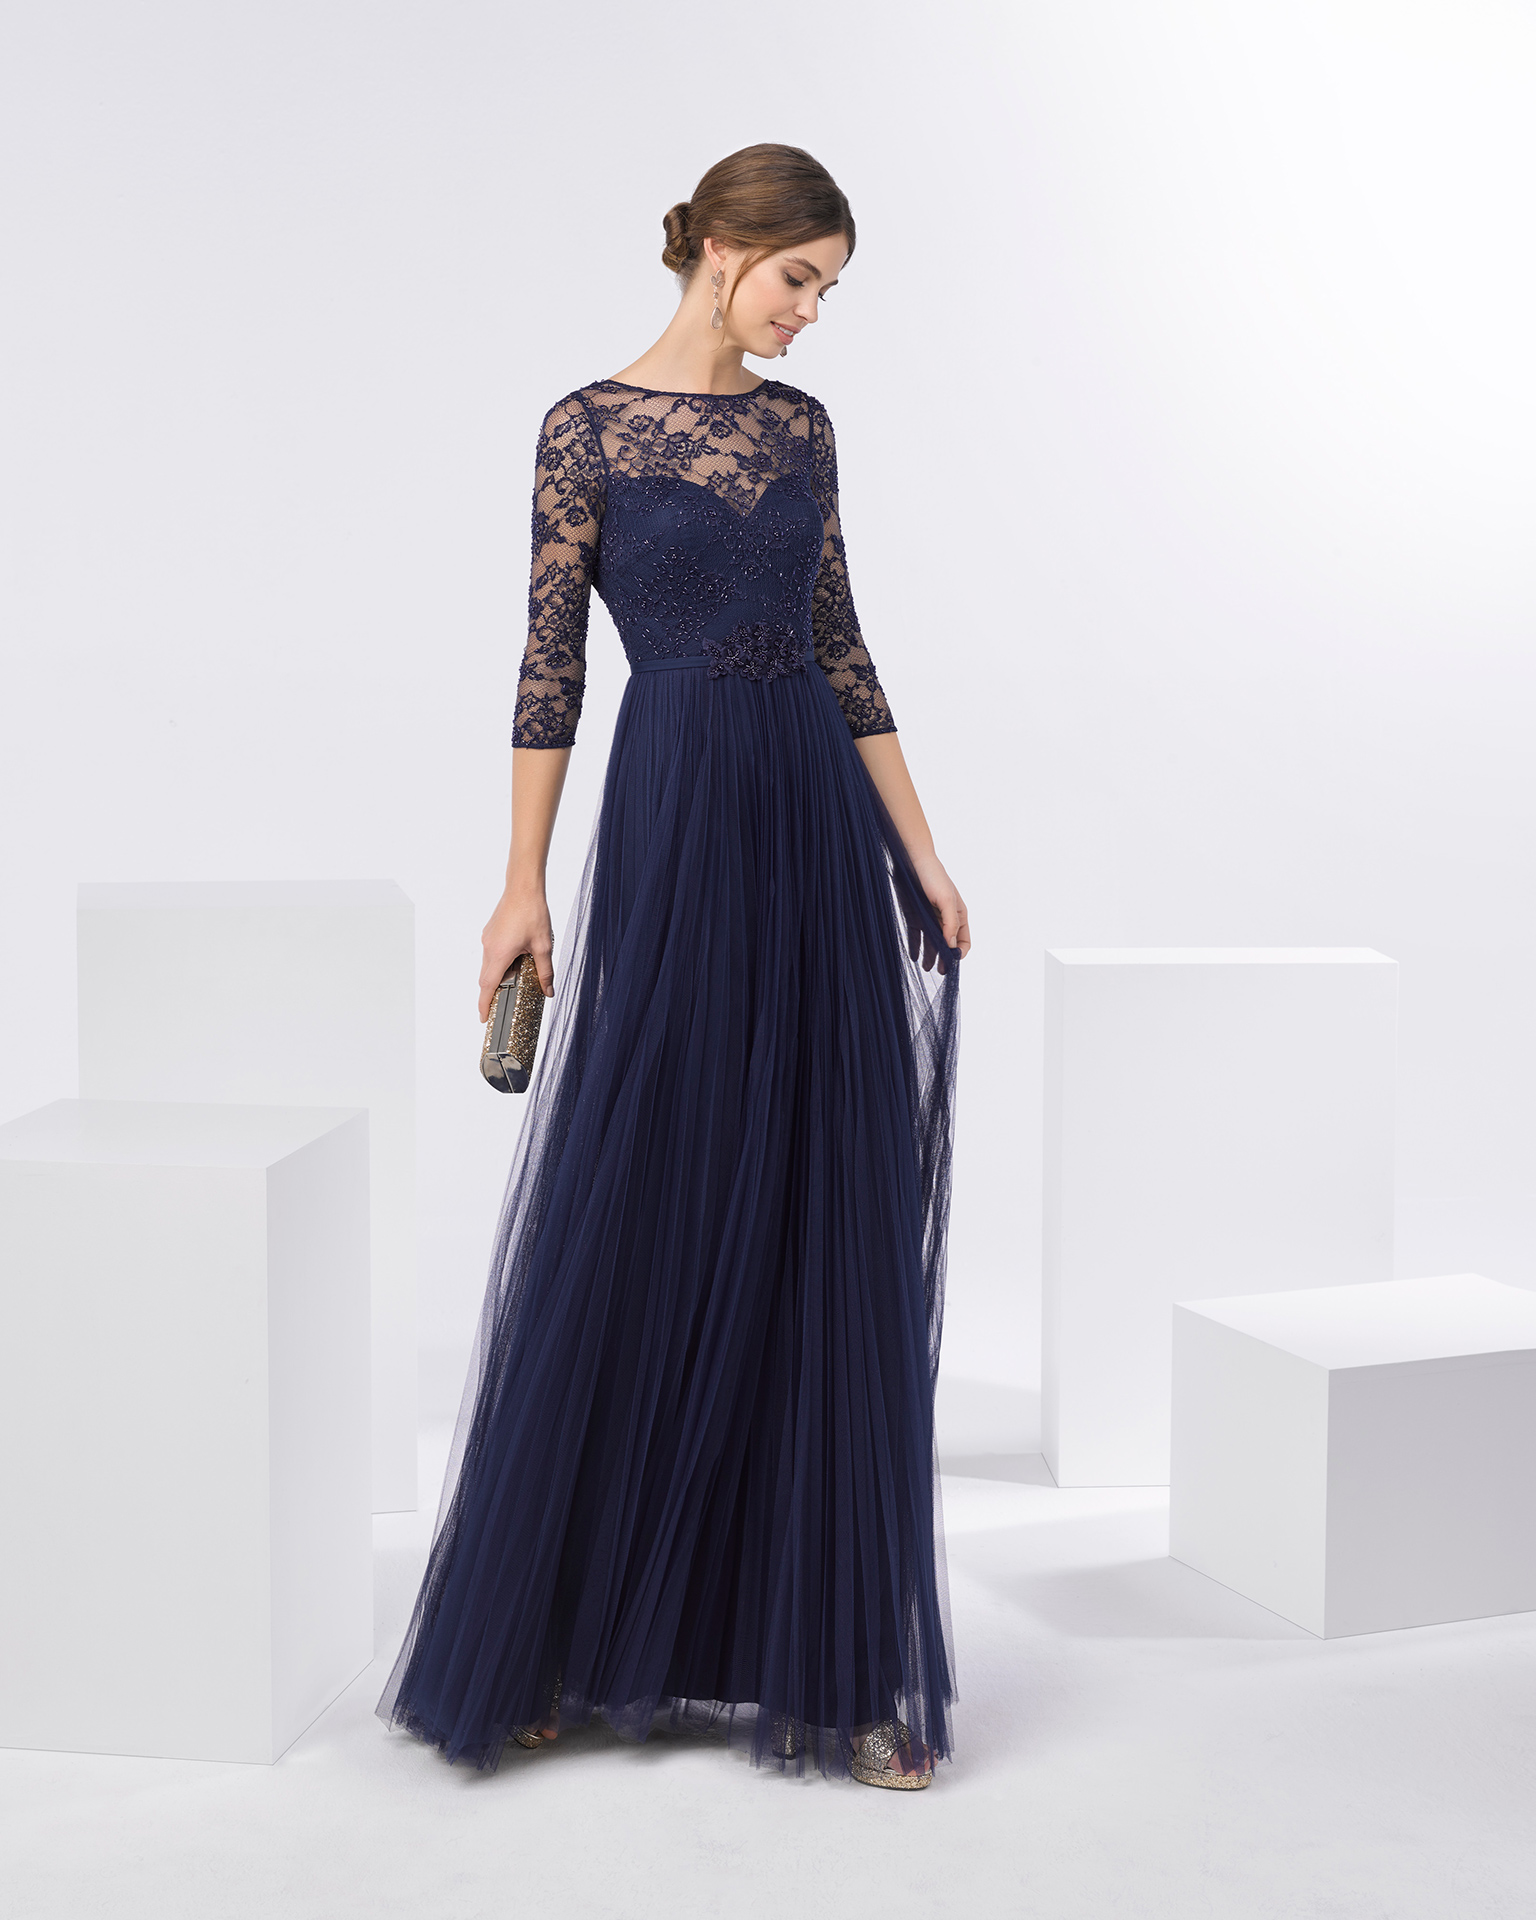 Tulle cocktail dress with beaded lace bodice, bateau neckline and three-quarter sleeves. Available in navy blue, pink and smoke. 2018 FIESTA AIRE BARCELONA Collection.